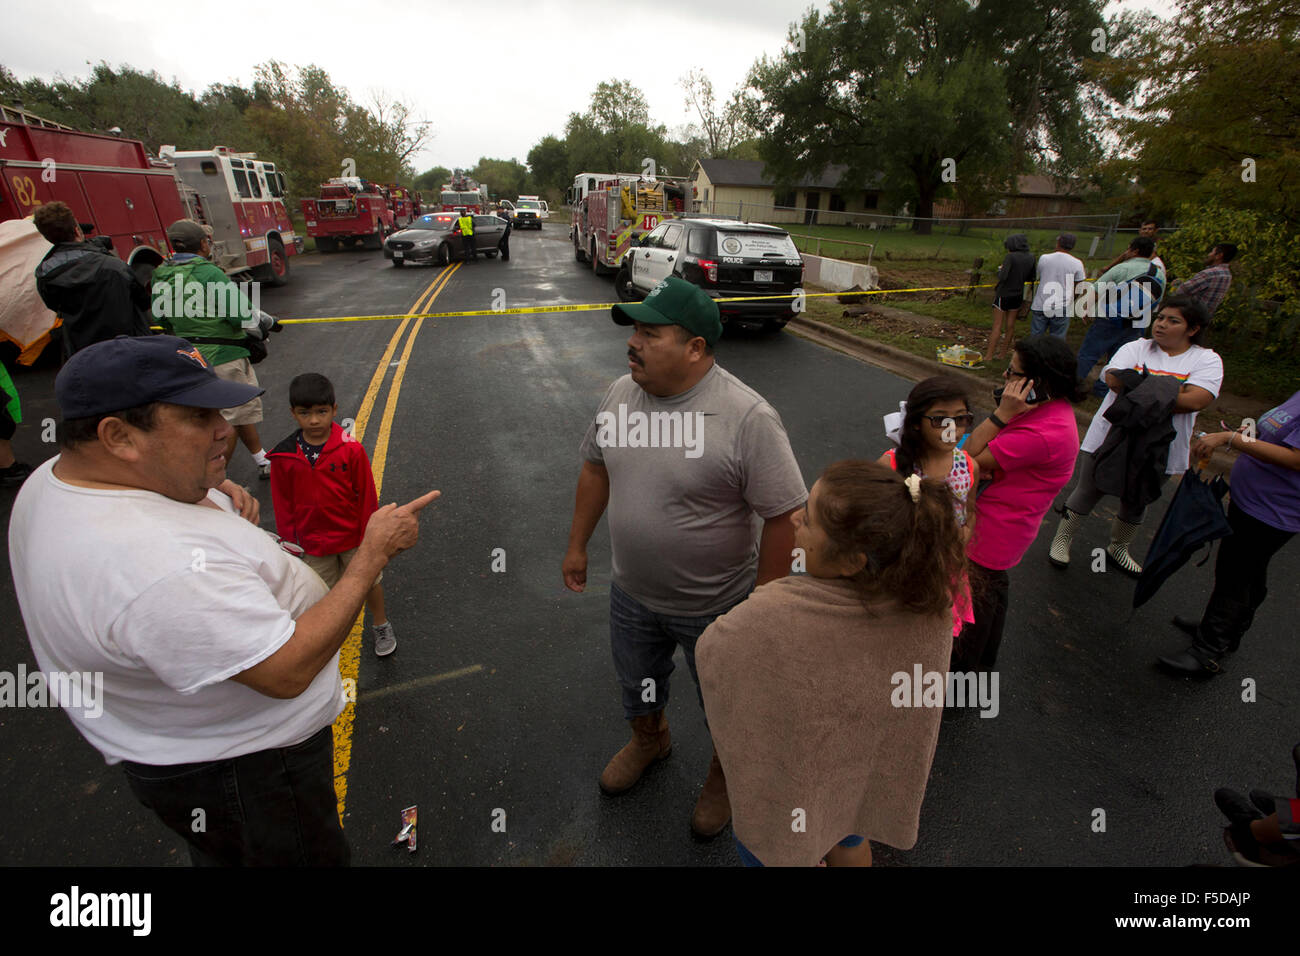 Residents of the Onion Creek neighborhood who were able, fled their homes on October 30, 2015 after flash flooding - Stock Image